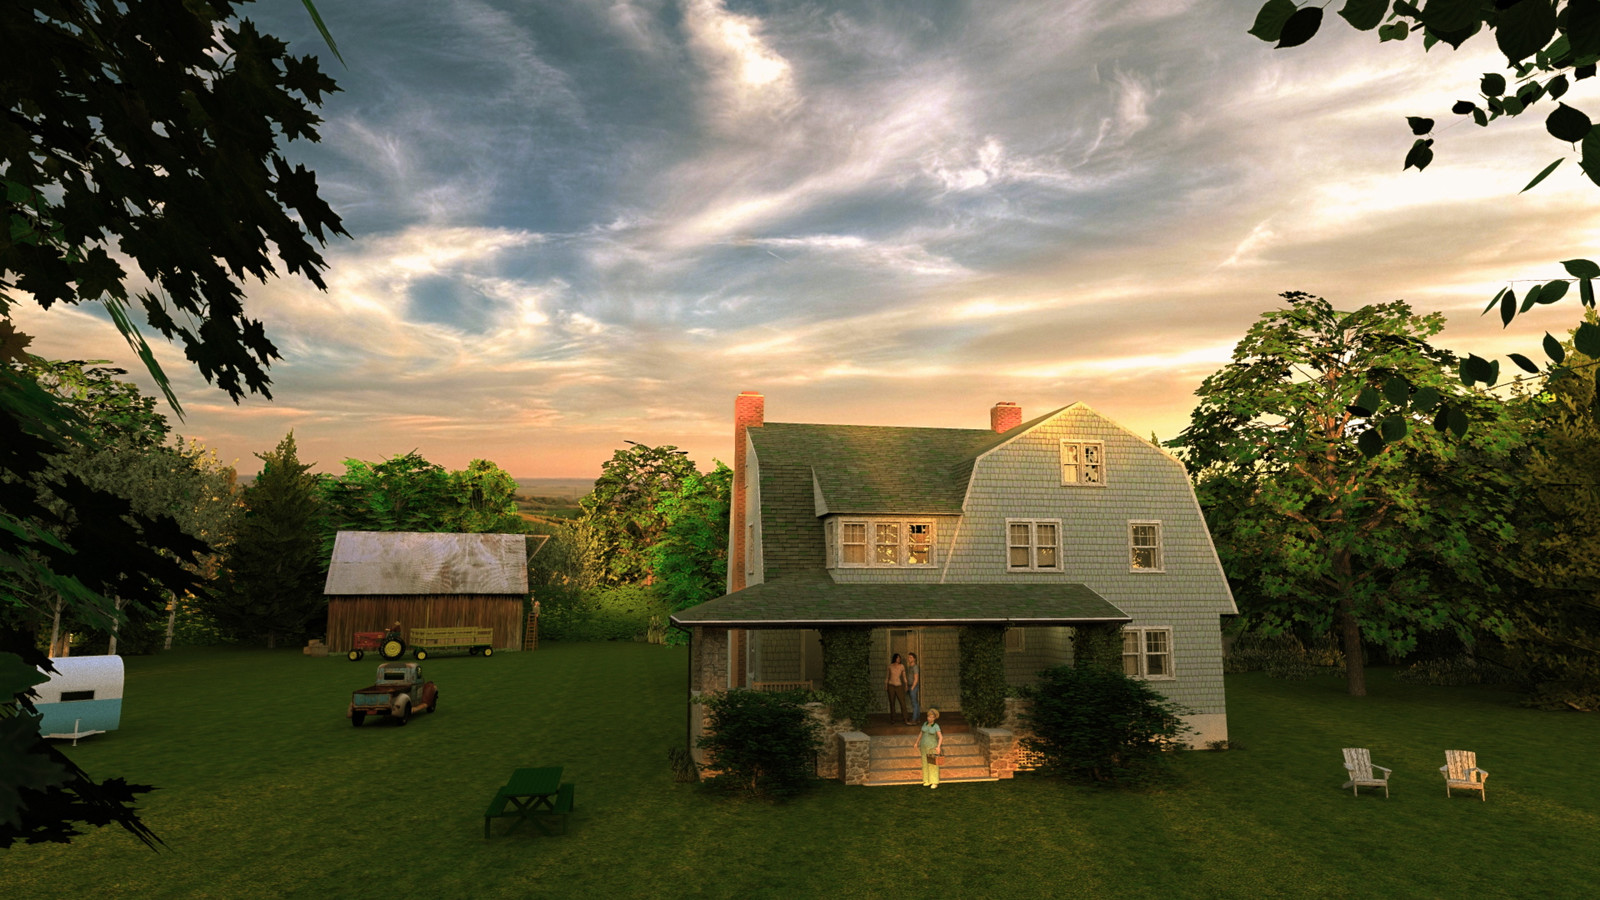 """""""Mason Farm - Afternoon Delight"""" Summer Sun Collection  07 Masonfarm HD1080 10 - iP Kodac  """"SketchUp to LayOut"""" The Mason Farm Renders for the launching of the new book """"SketchUp to LayOut"""" http://bit.ly/2j0d0Wh by MasterSketchup."""